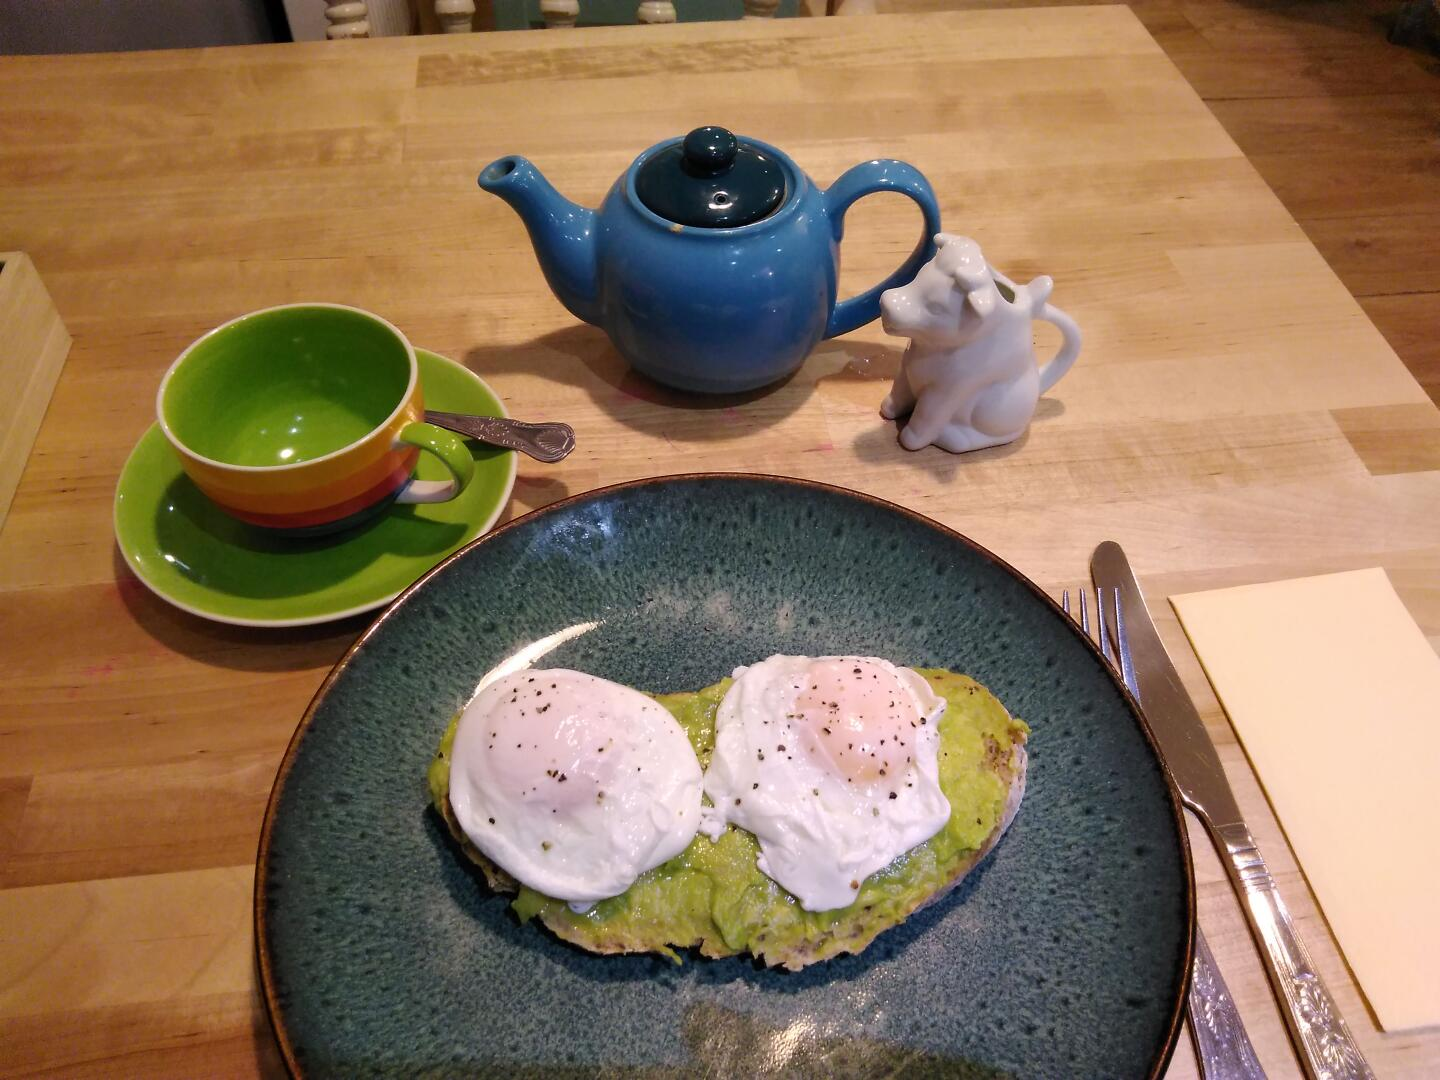 Lunch at Mad Hatter's, Chester: avocado spread, poached eggs, and Earl Grey tea with milk fresh from the cow.